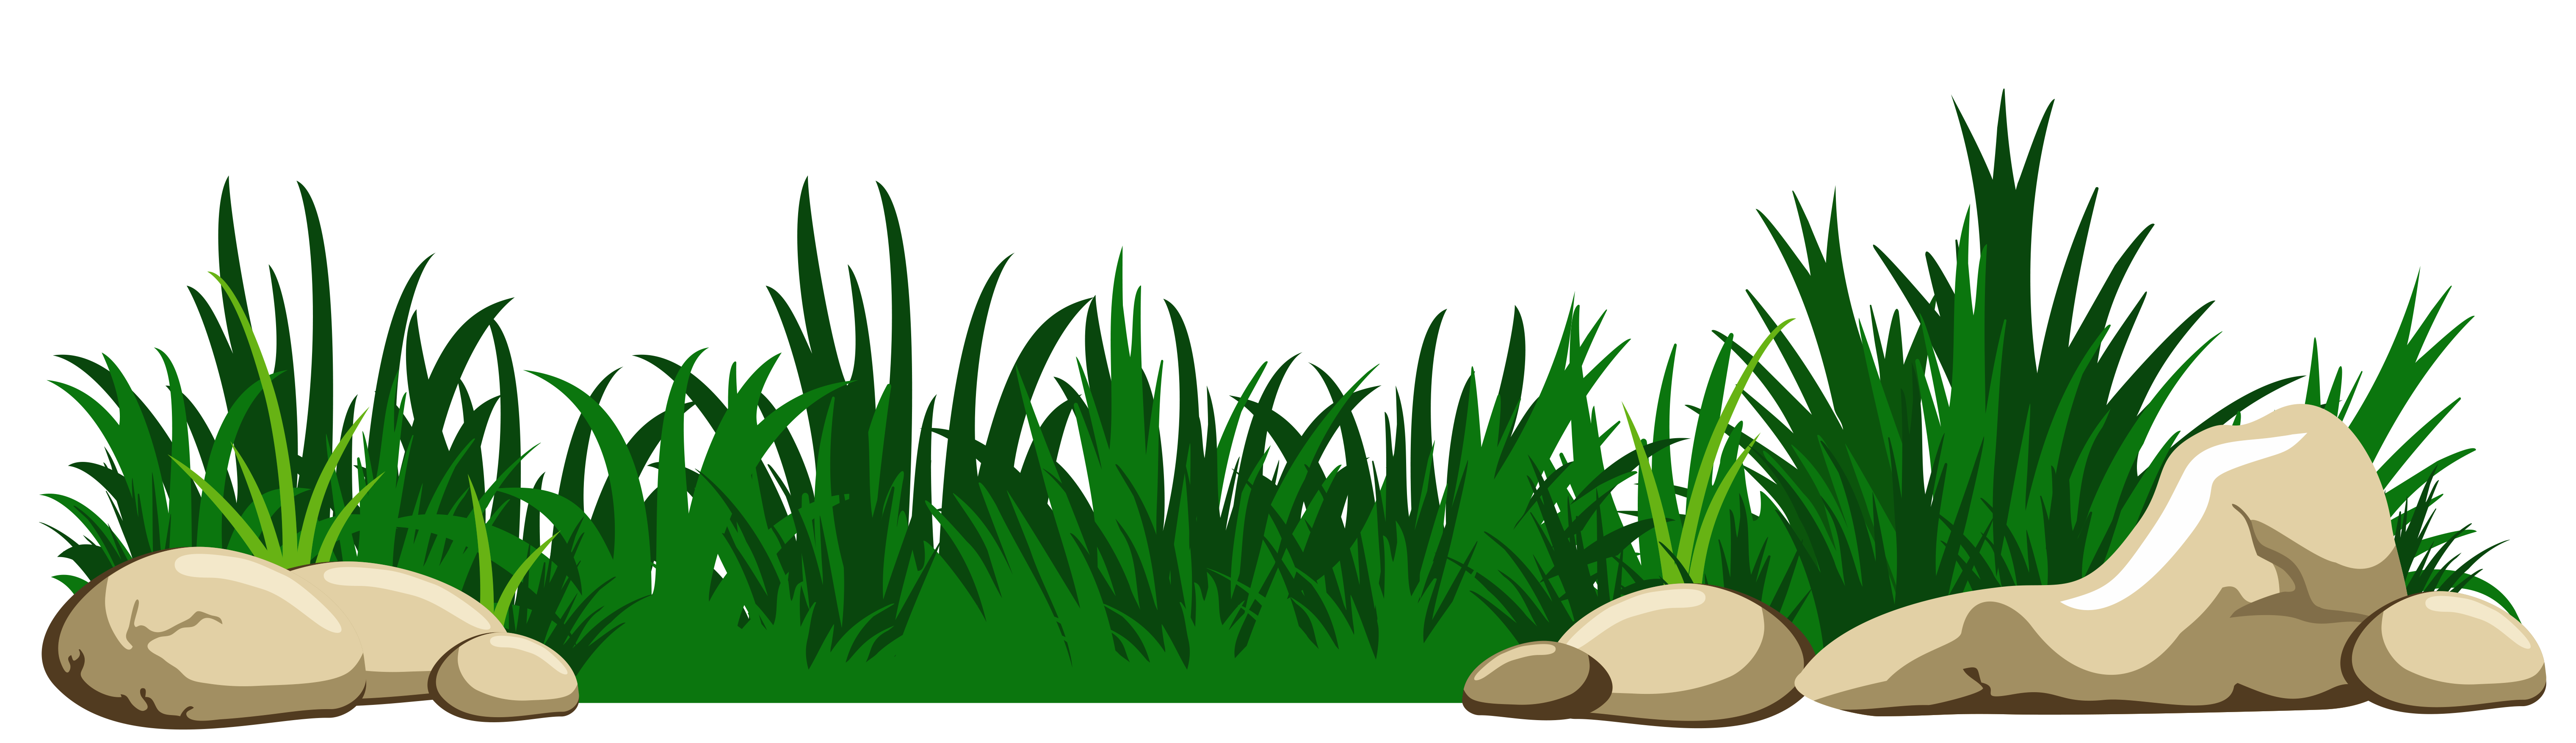 With rocks transparent png. Picture clipart grass